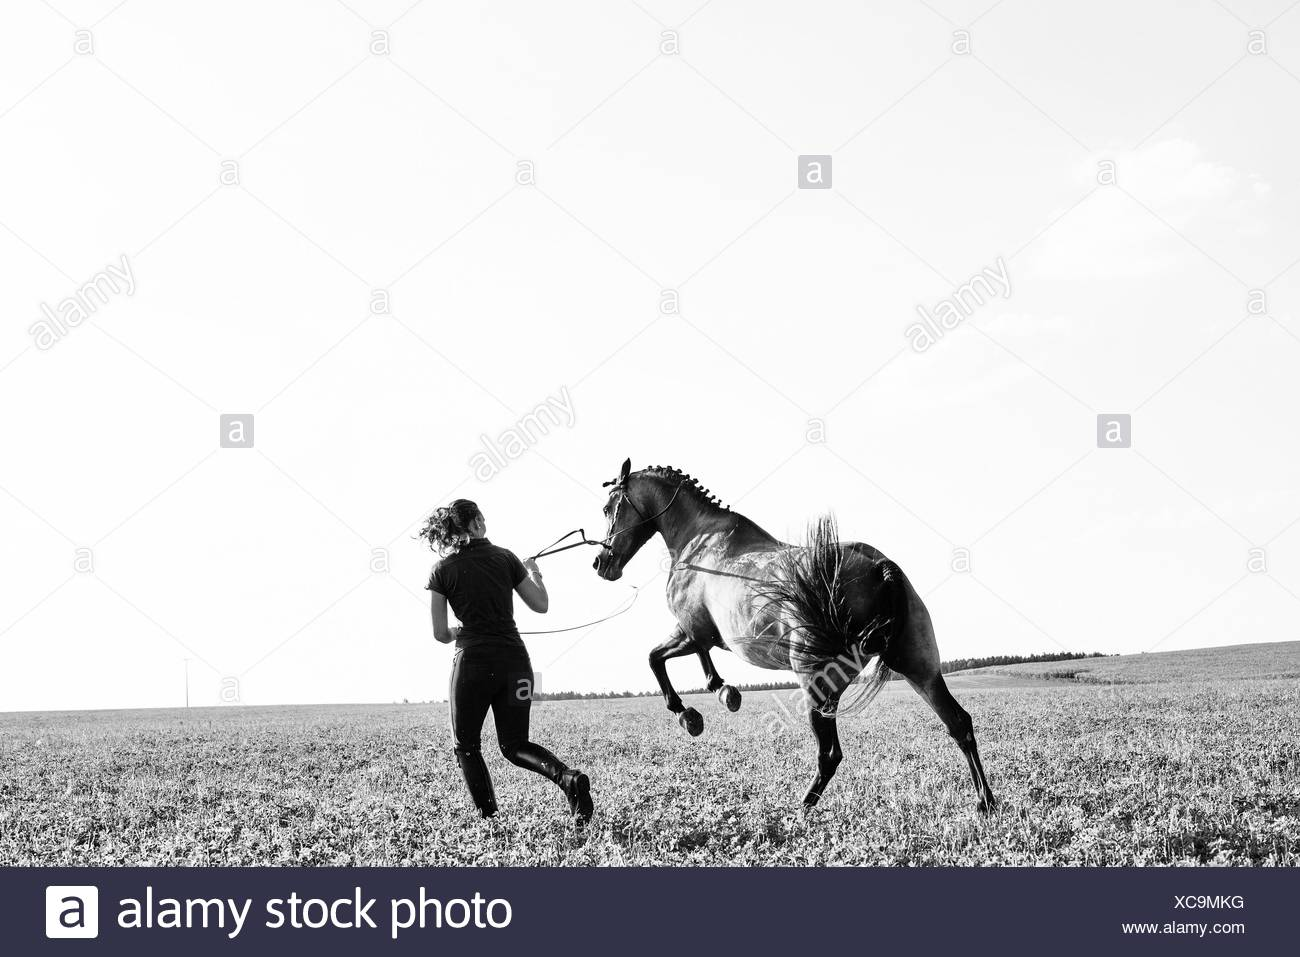 B&W image of woman training rearing horse in field - Stock Image